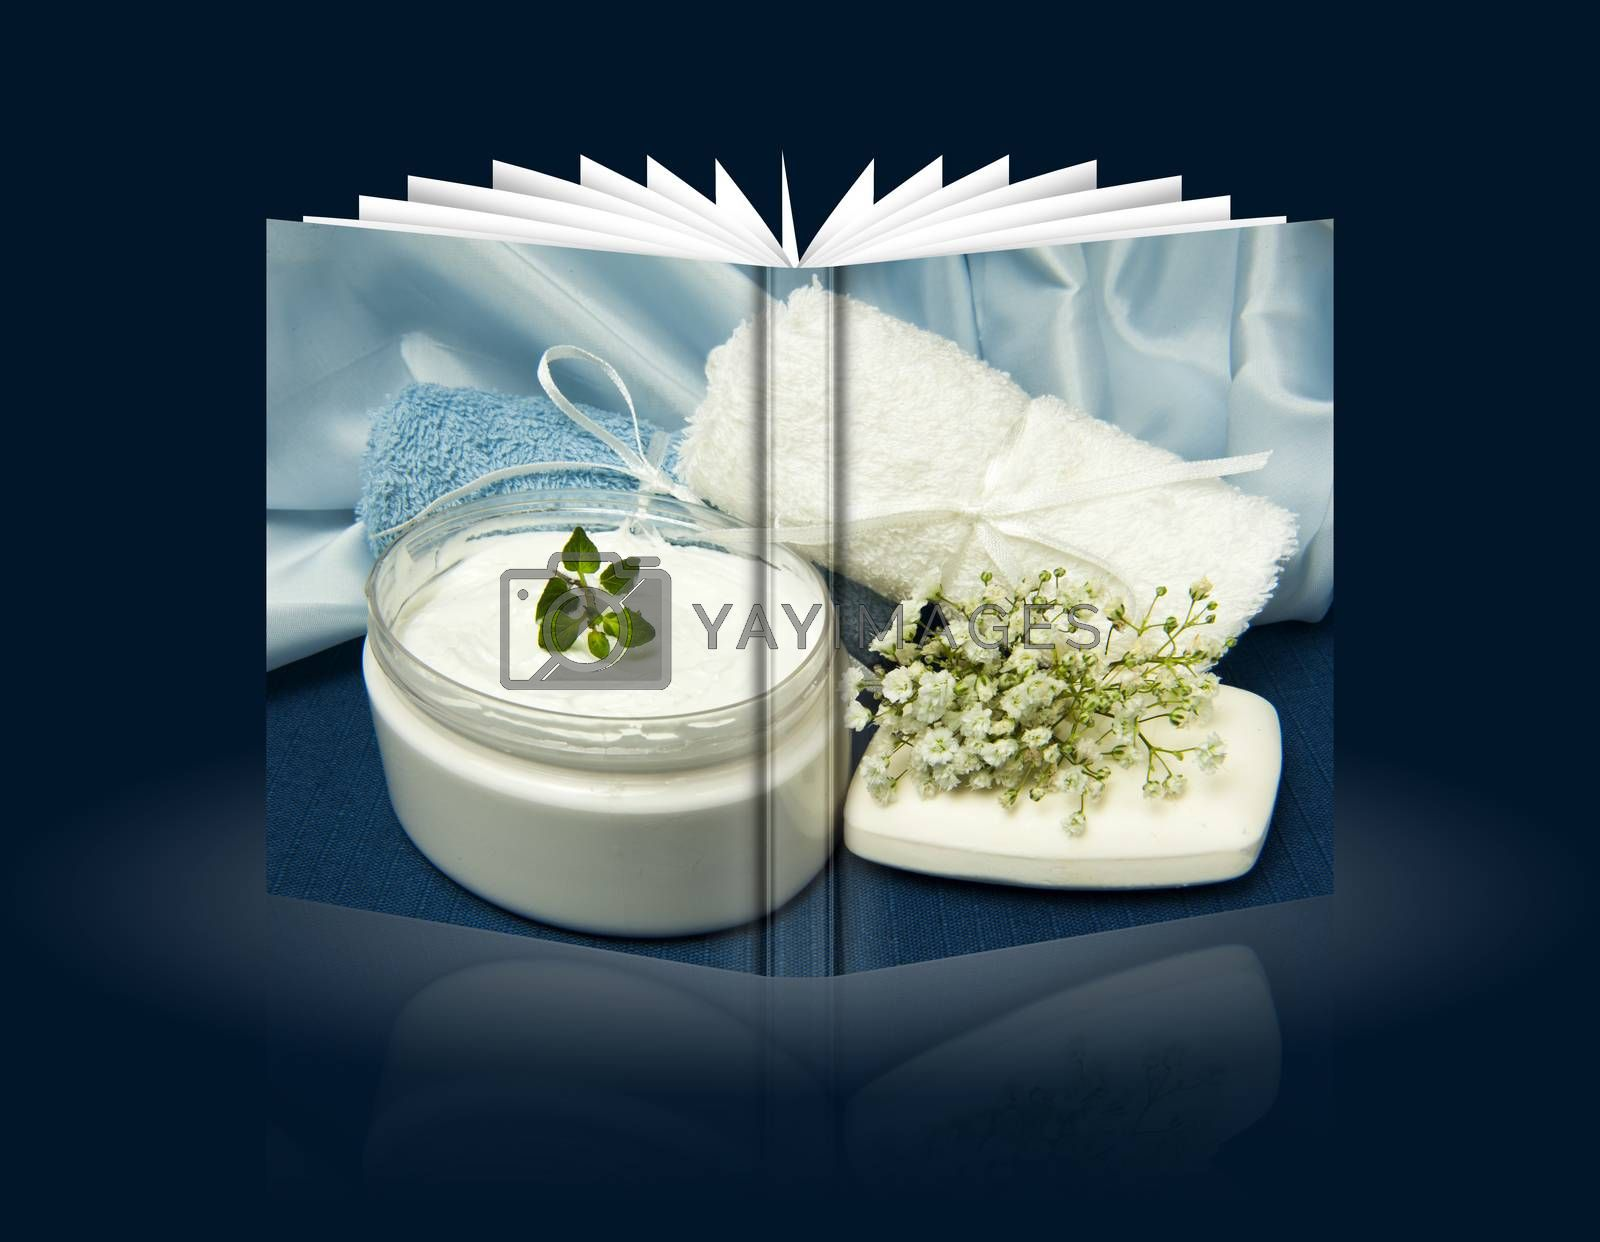 Royalty free image of book of Biological home made product by carla720